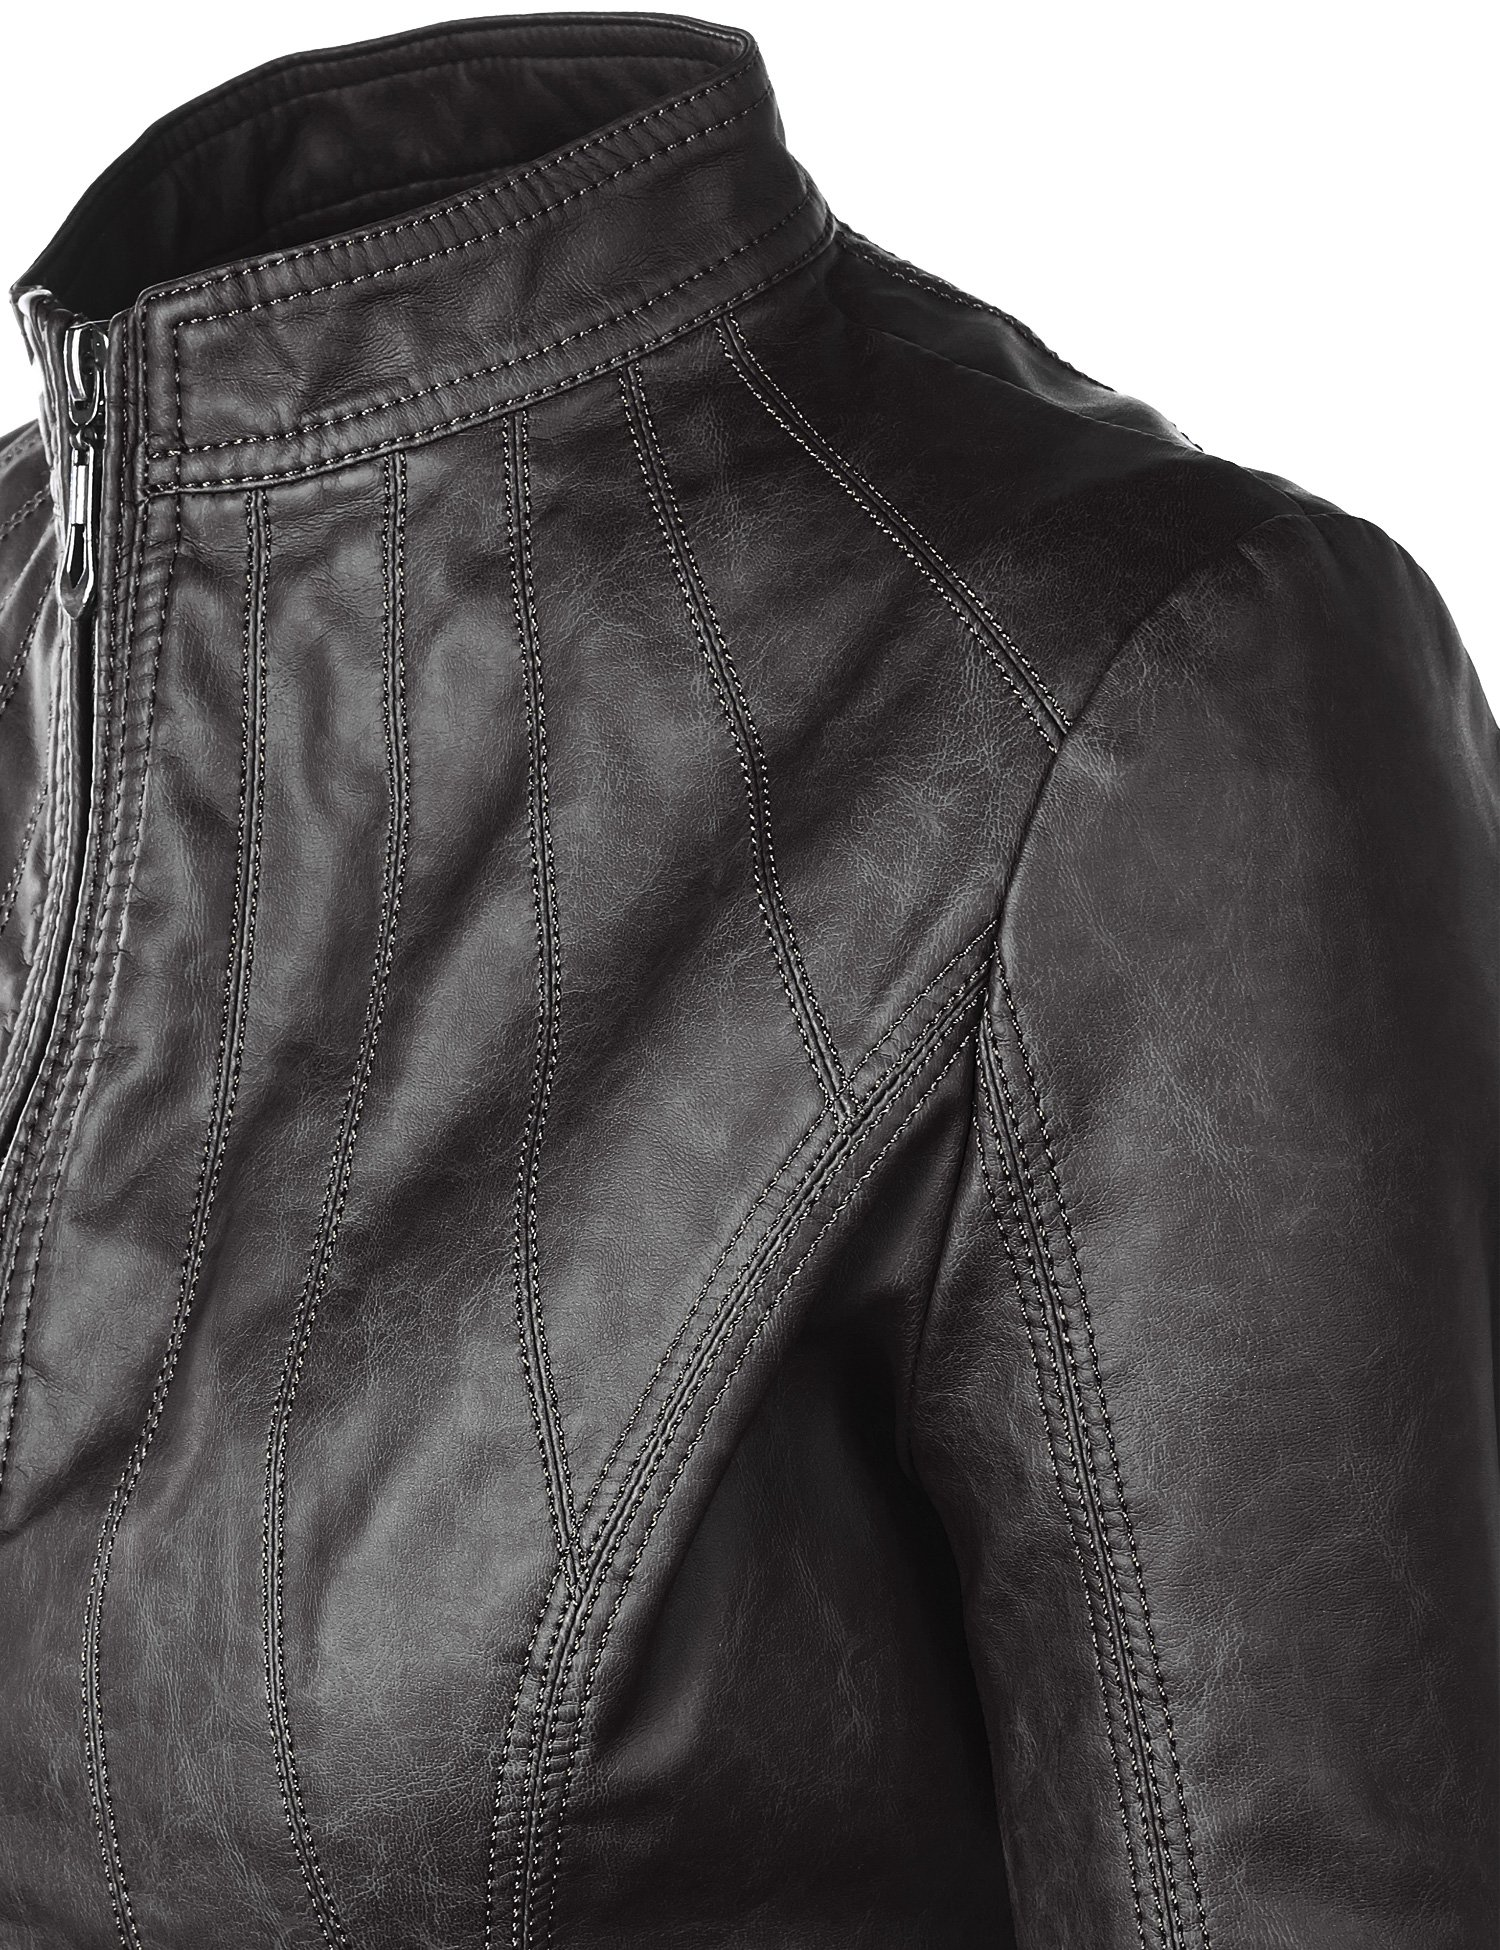 WJC877 Womens Panelled Faux Leather Moto Jacket L BLACK by Lock and Love (Image #4)